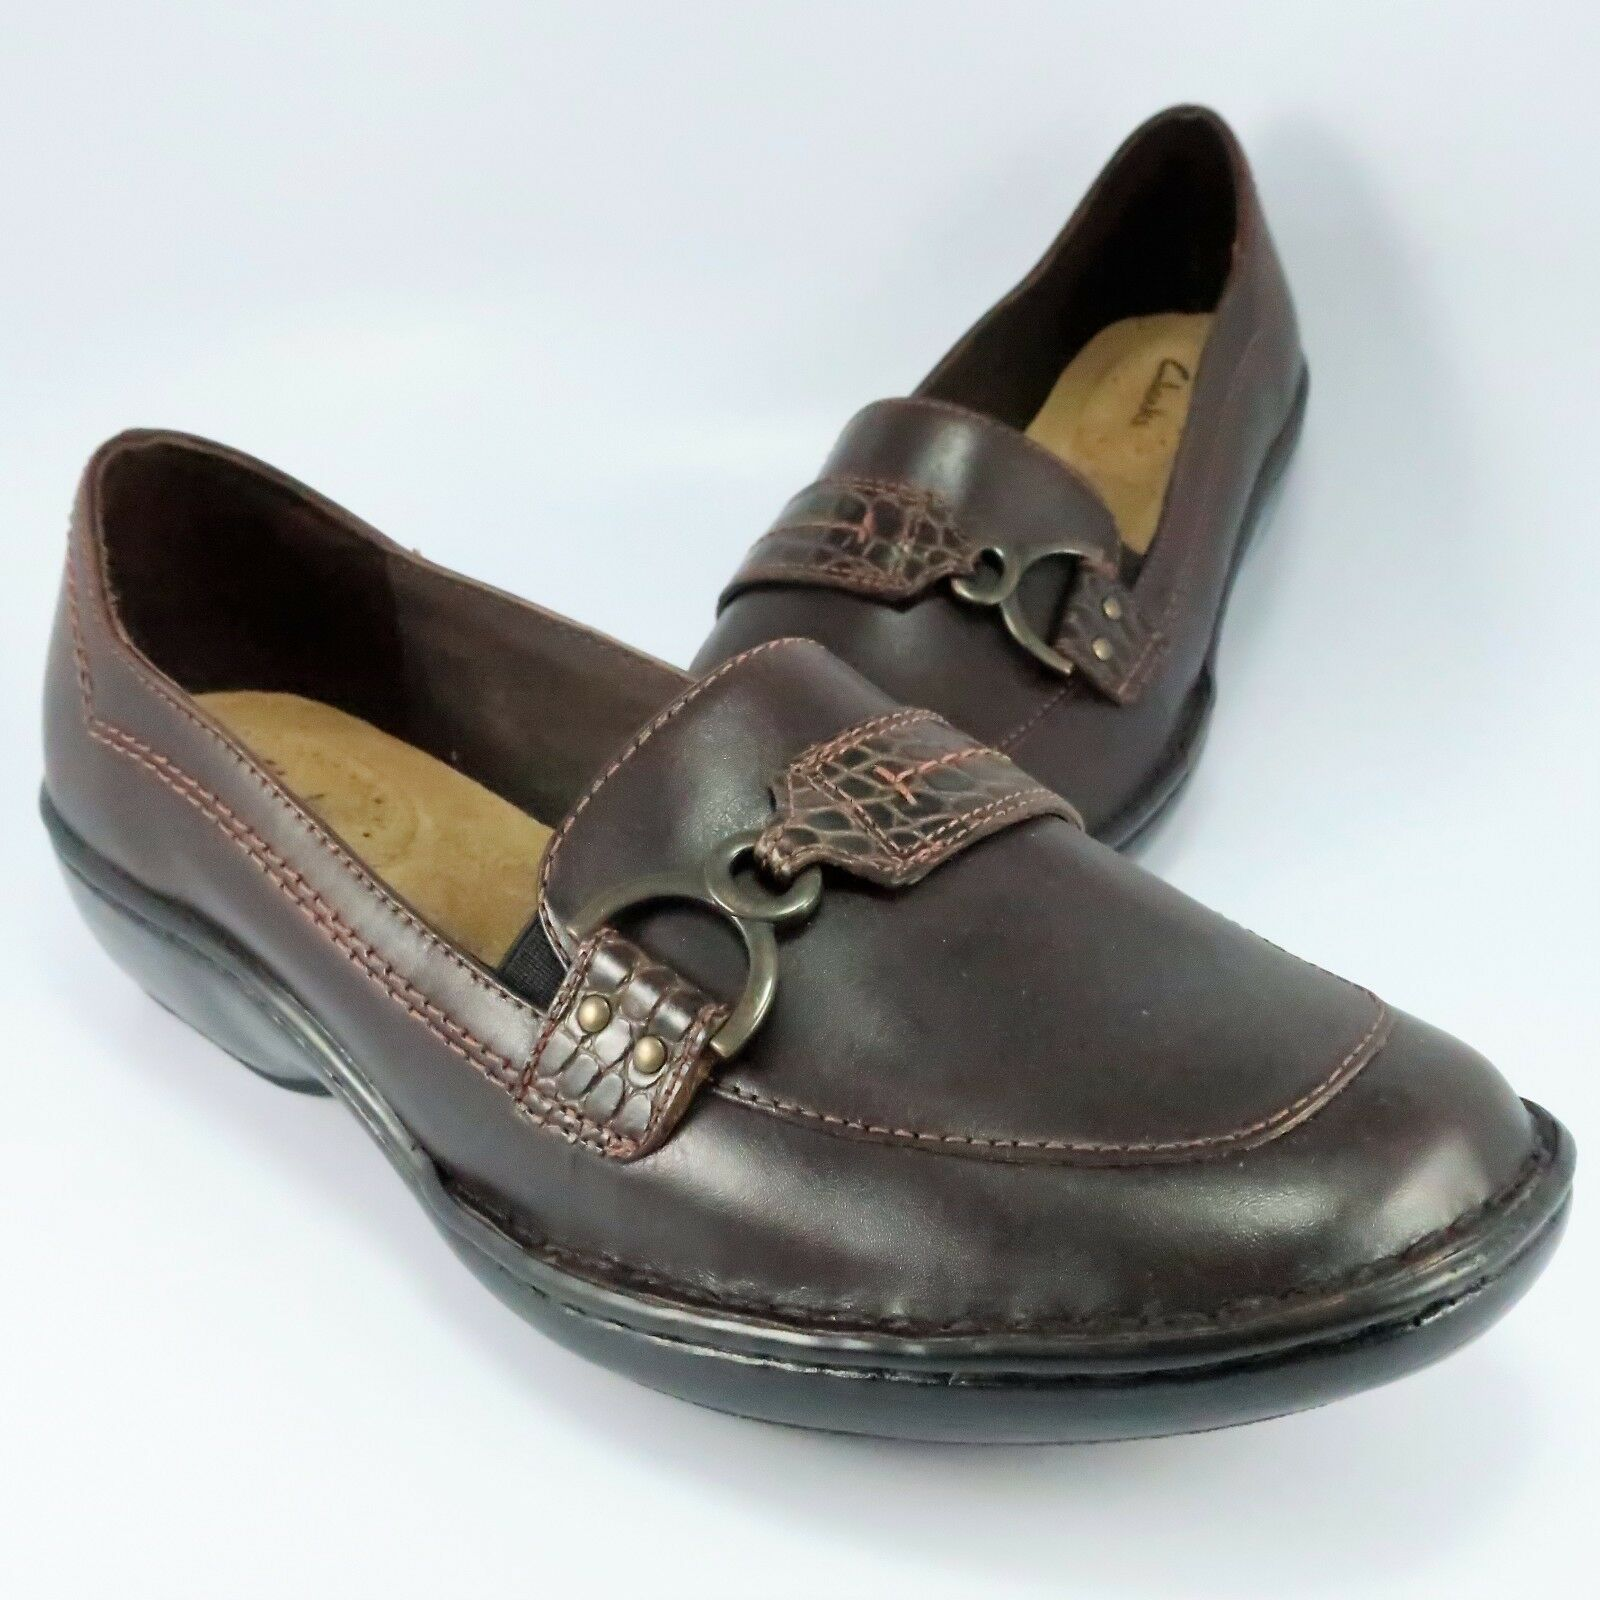 Clarks Slip-On Loafers Womens Size 8.5M Brown Leather Croc Moccasins Flats 77415